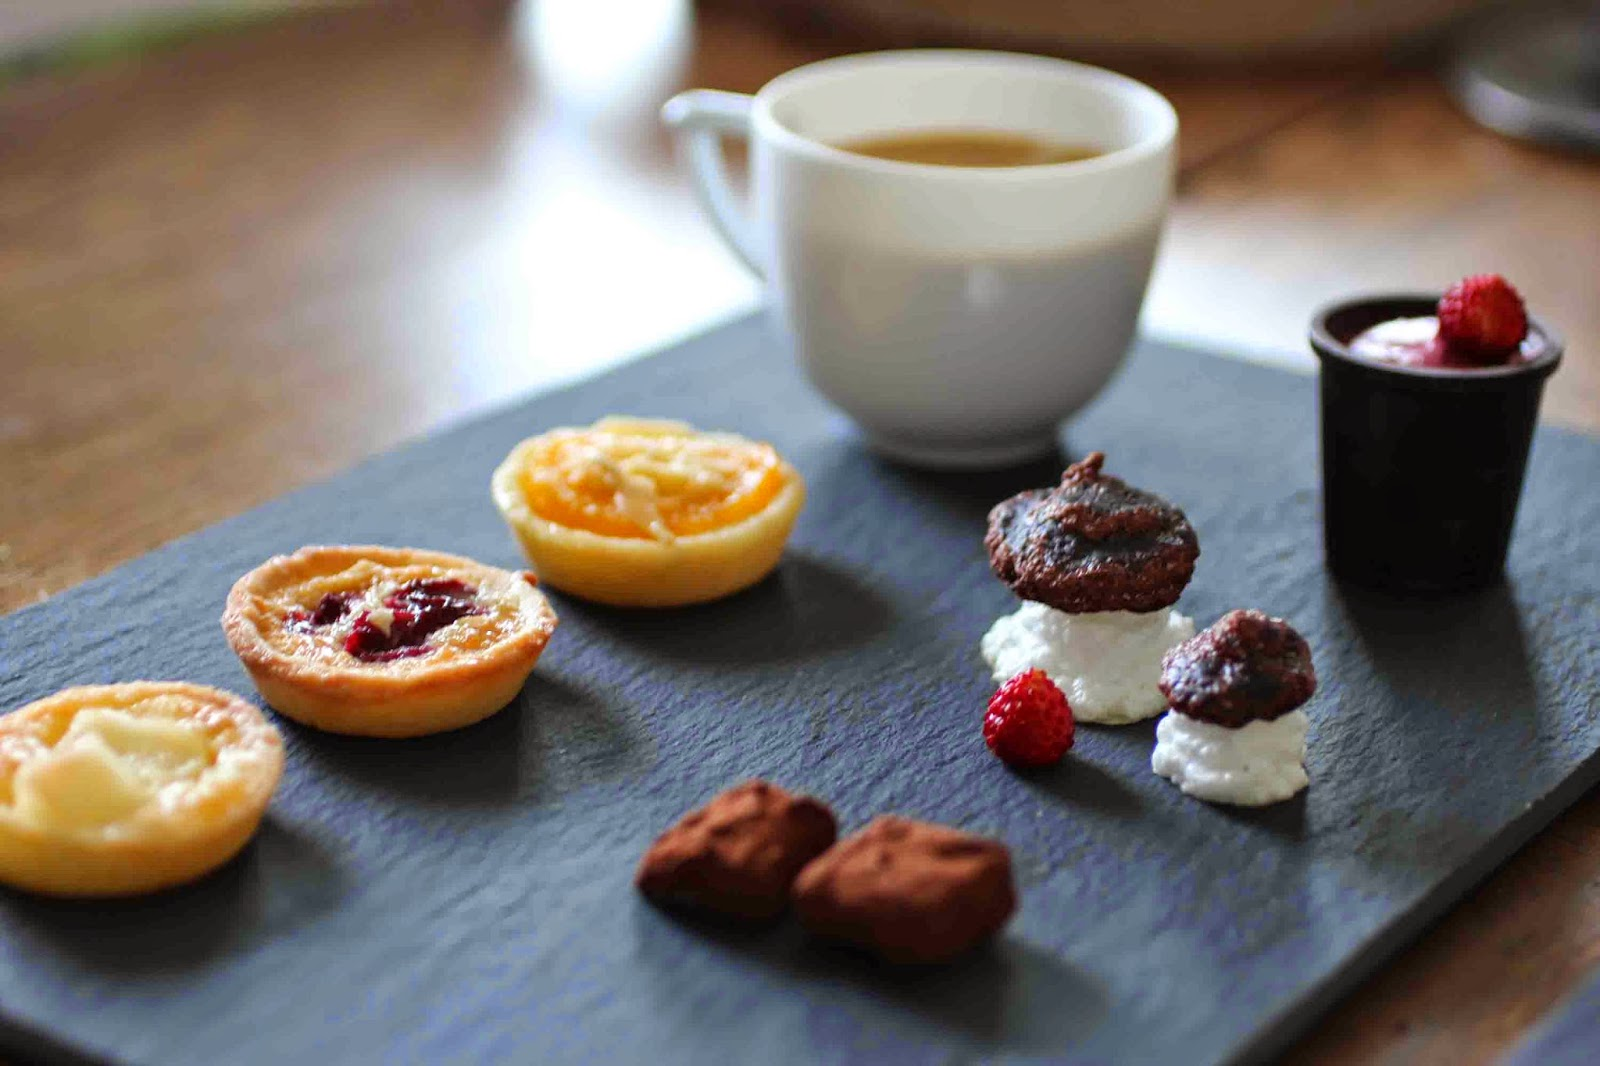 http://camilleenchocolat.blogspot.fr/2014/06/cafe-gourmand.html